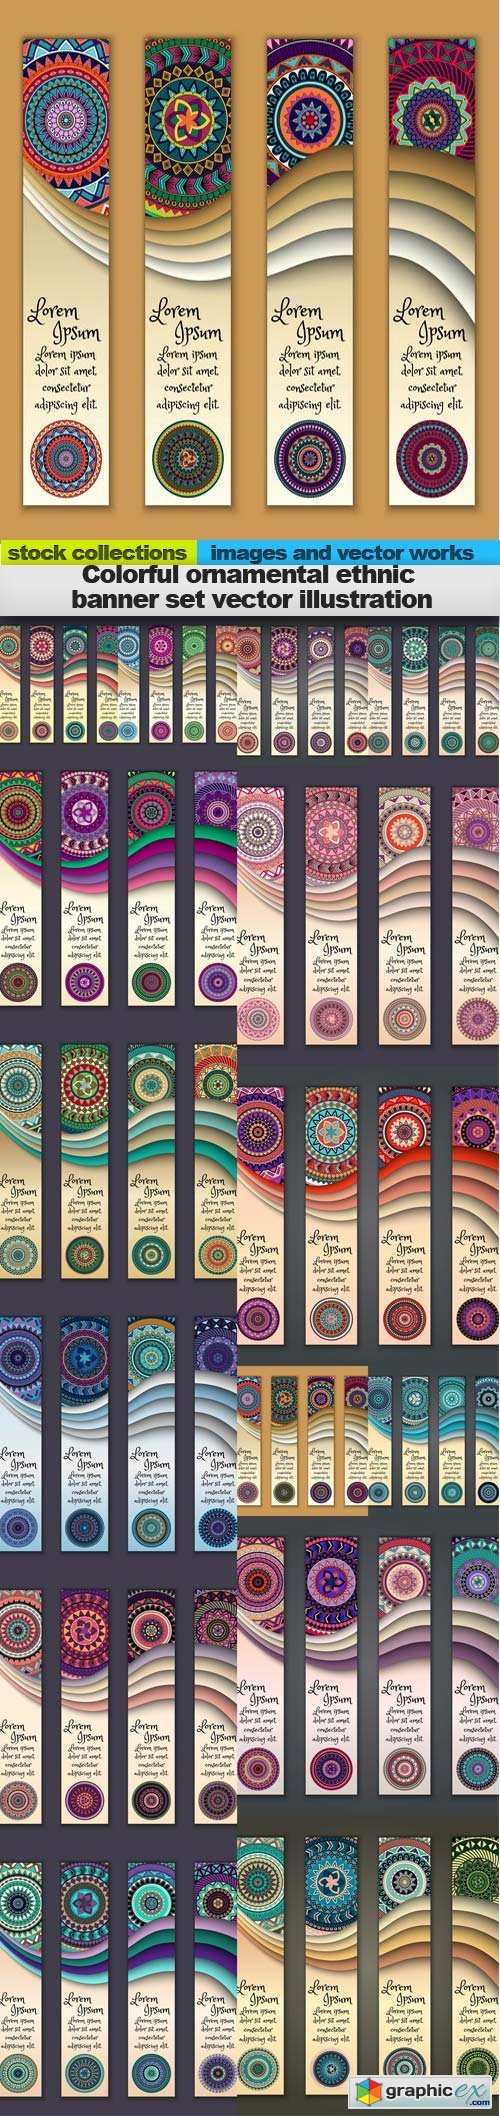 Colorful ornamental ethnic banner set vector illustration, 15 x EPS